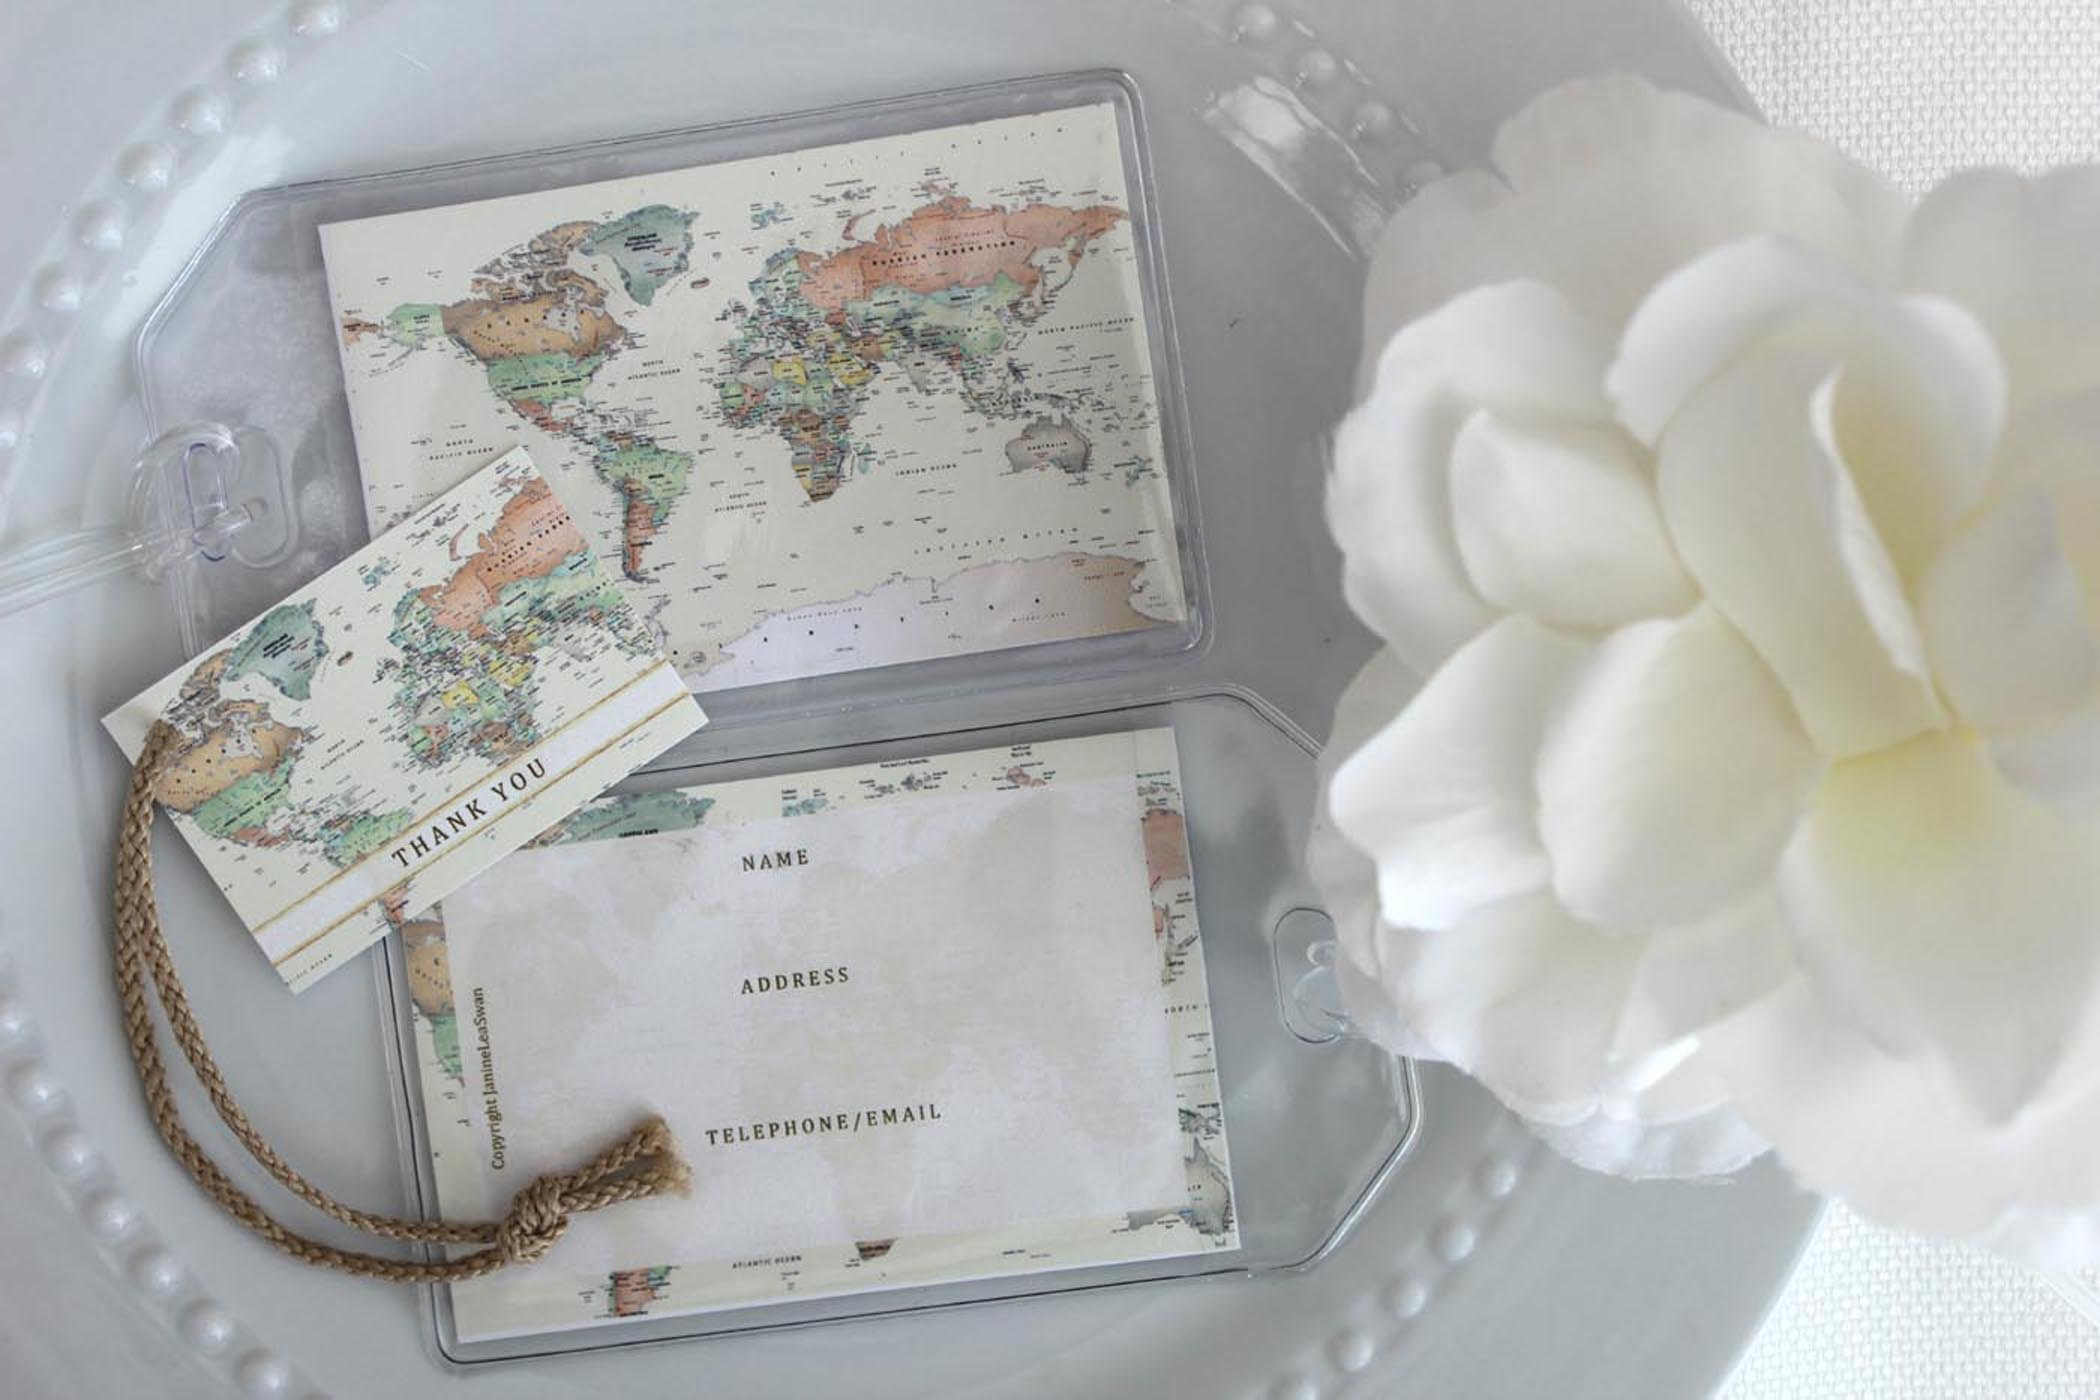 100 World Map Luggage Tag Favors ivory $1.25 ea.